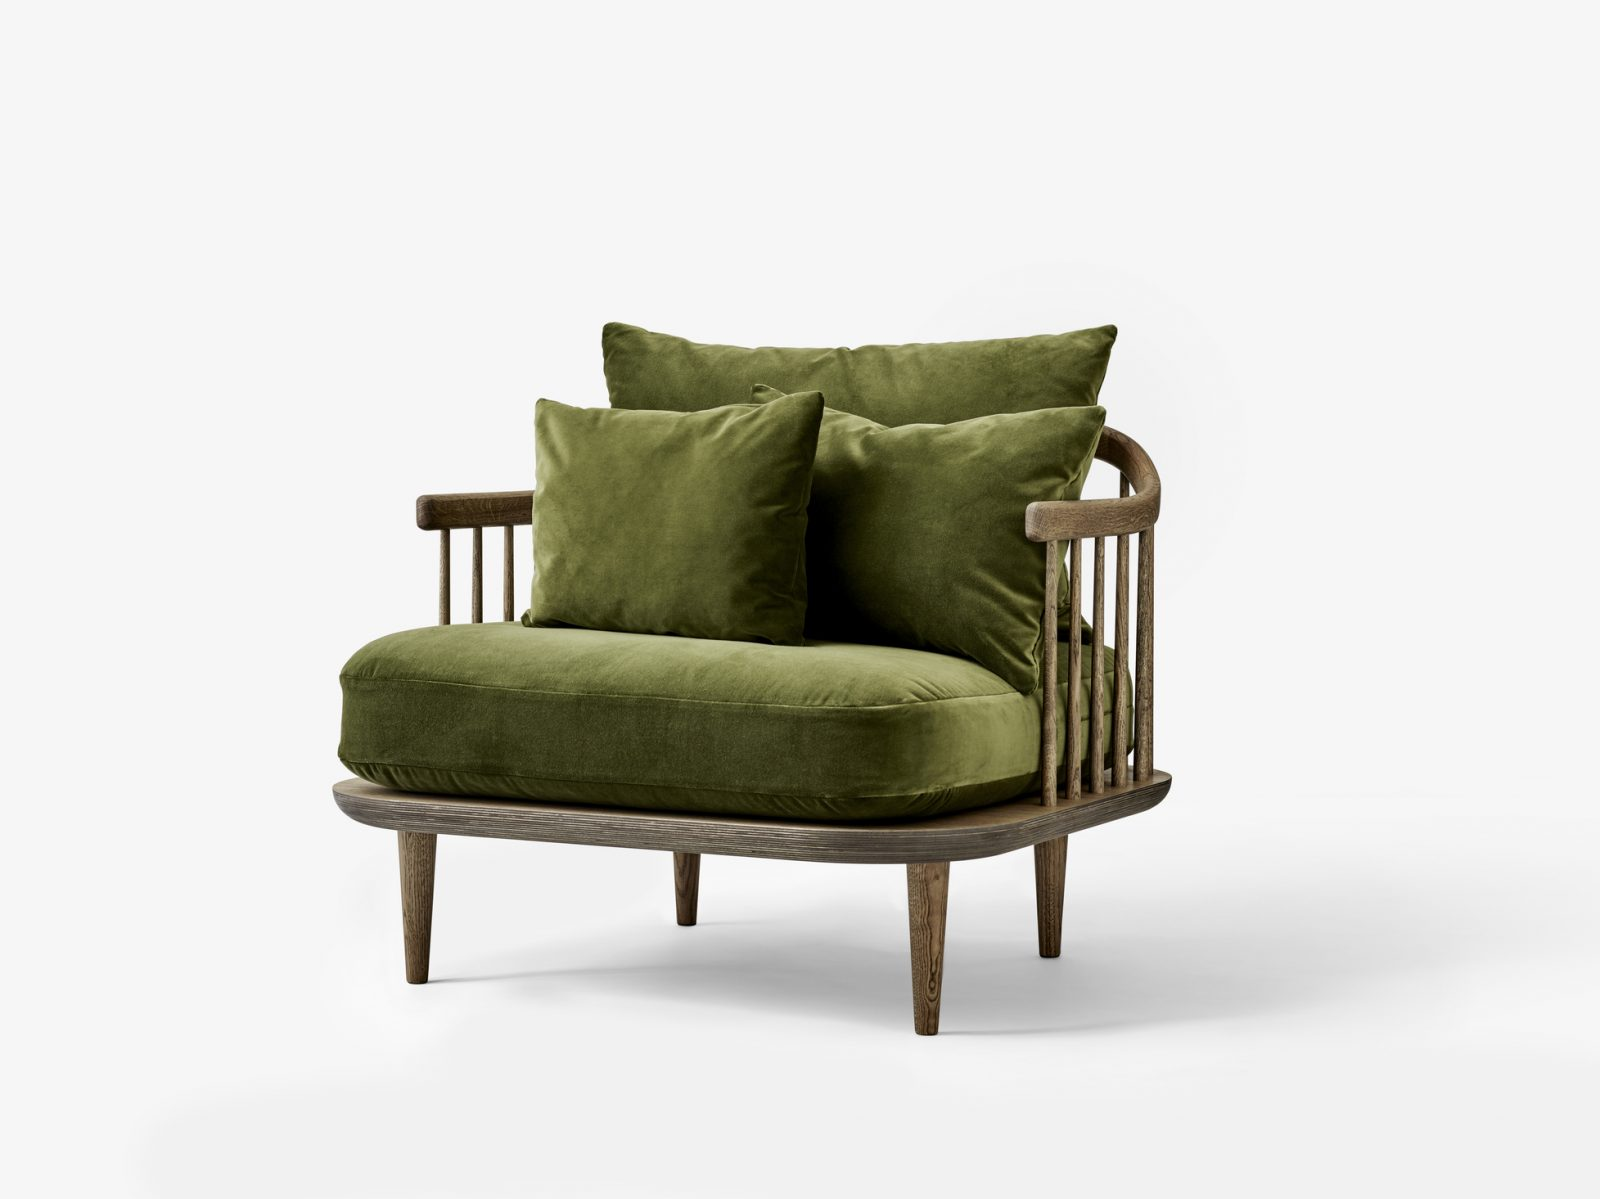 Anderson Pine Couchtisch Tradition Fly Sc1 Chair Design Your Own